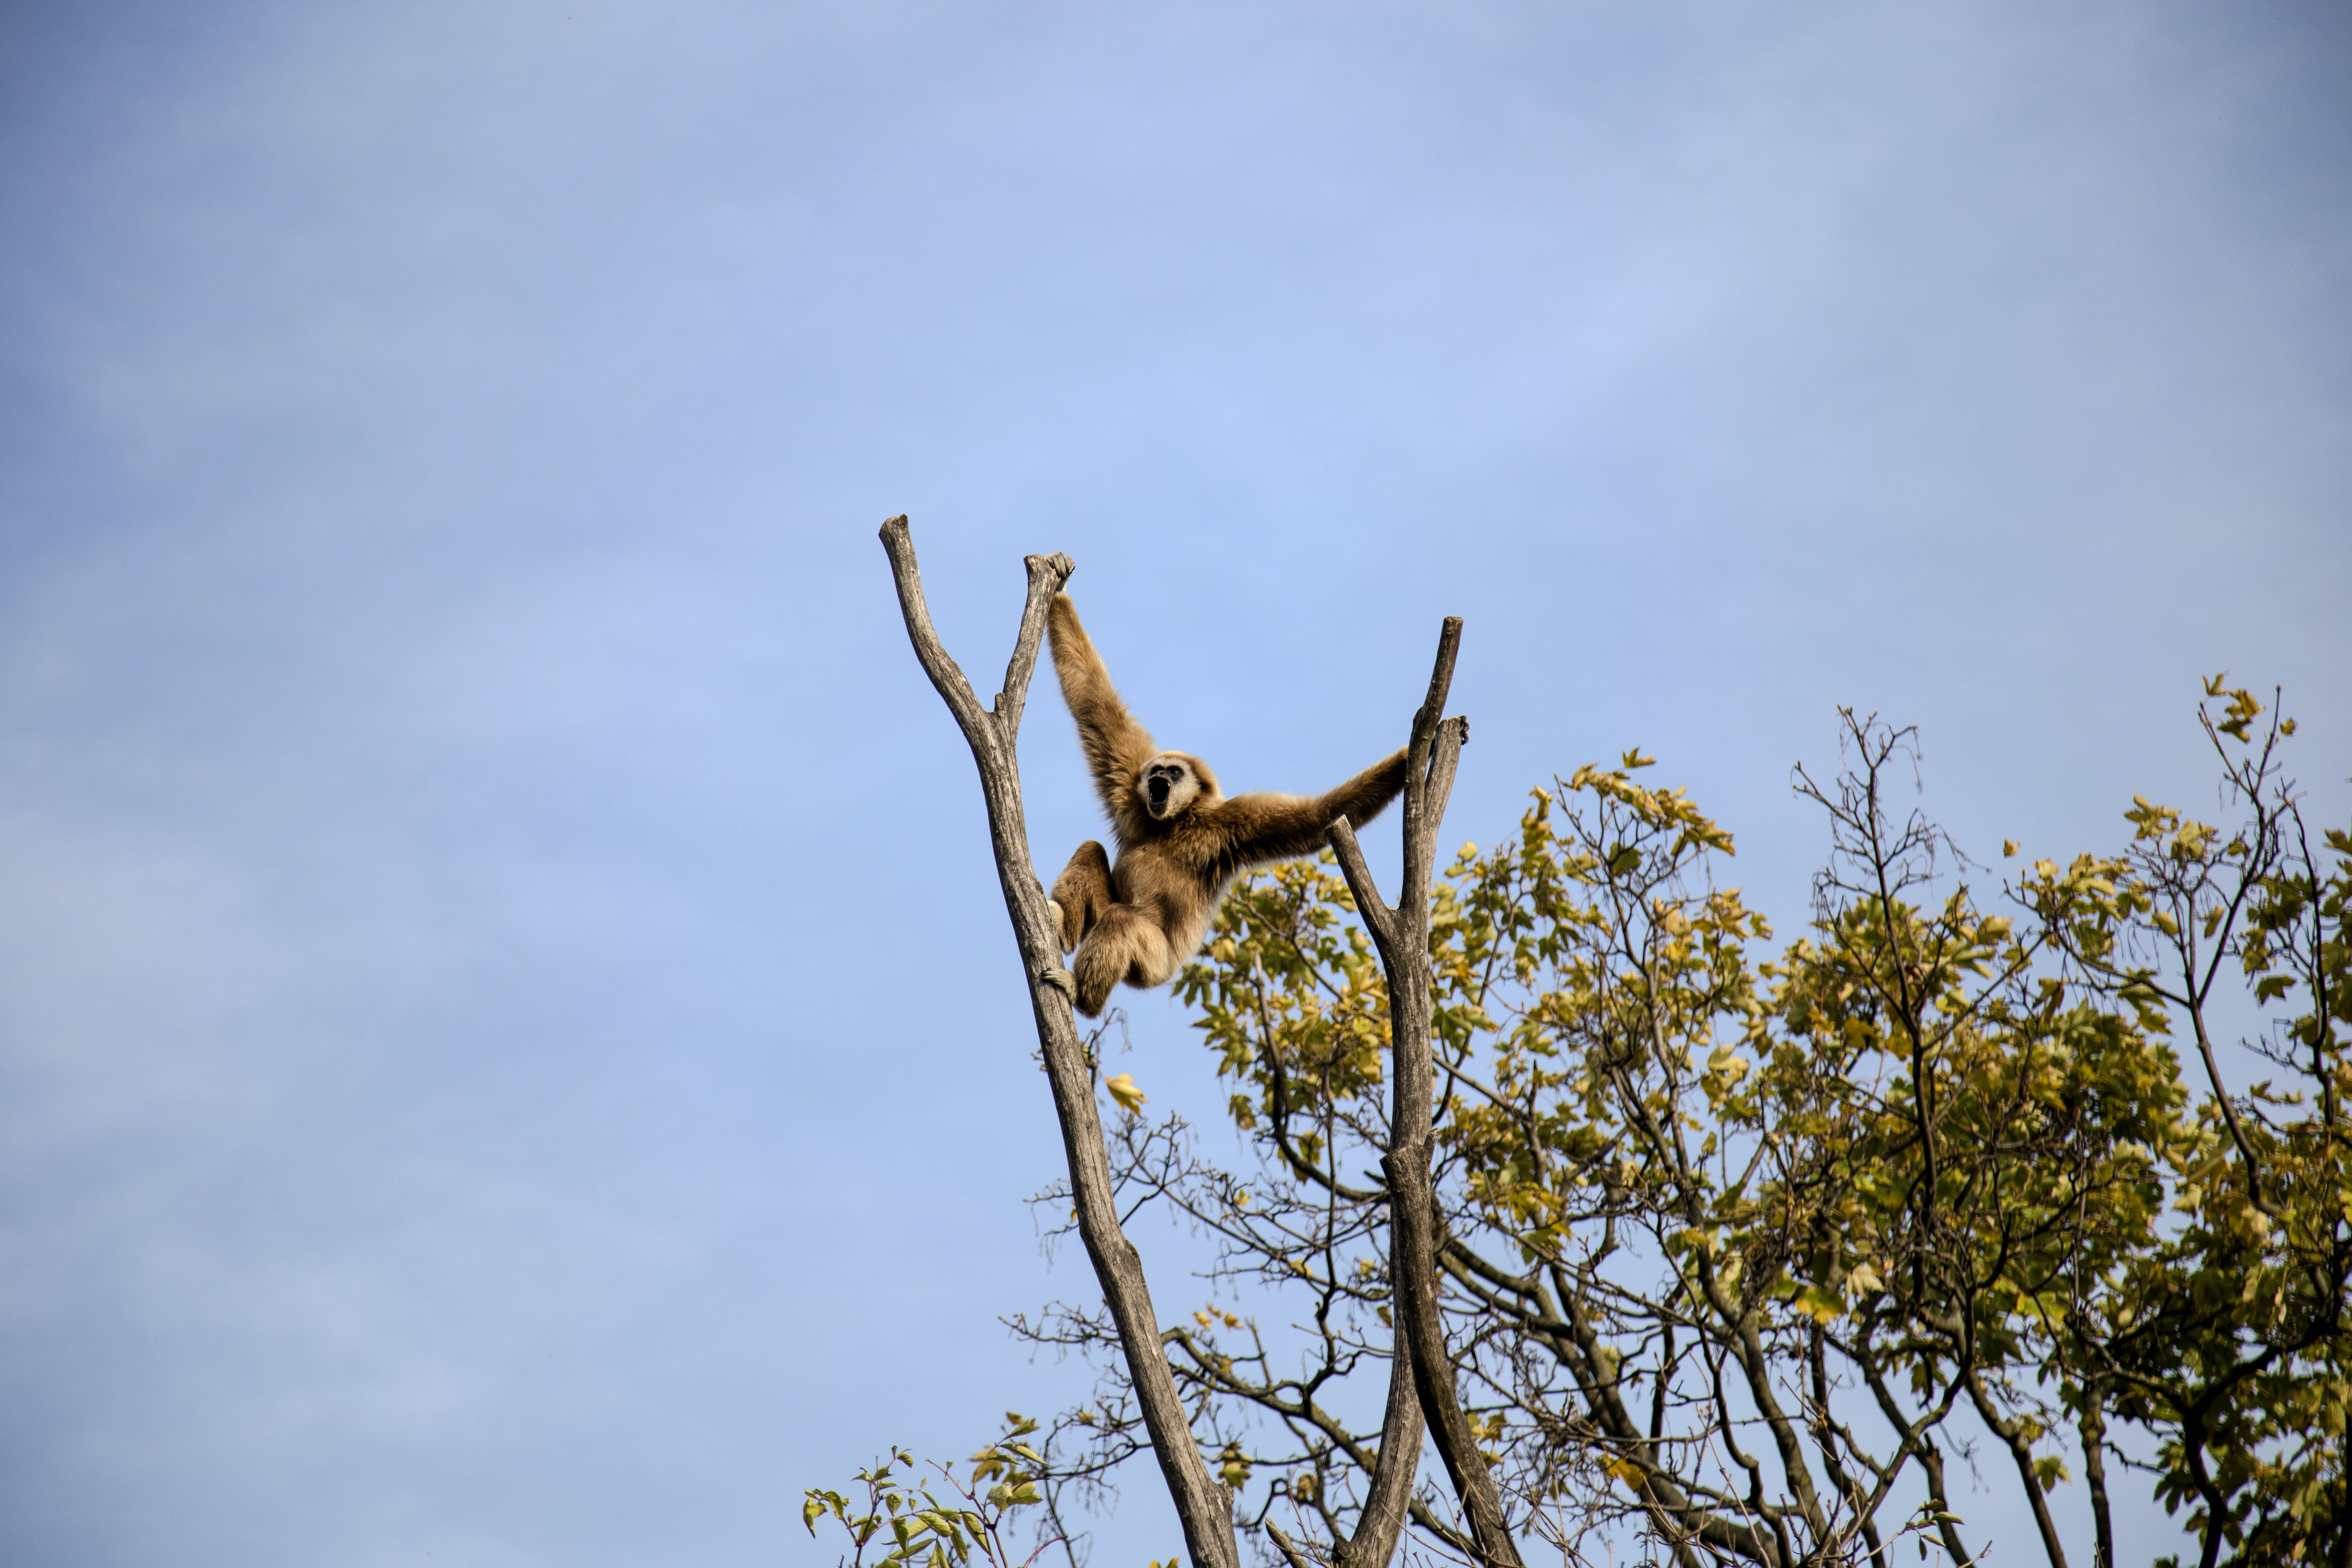 Photography of Monkey Climbing on Tree